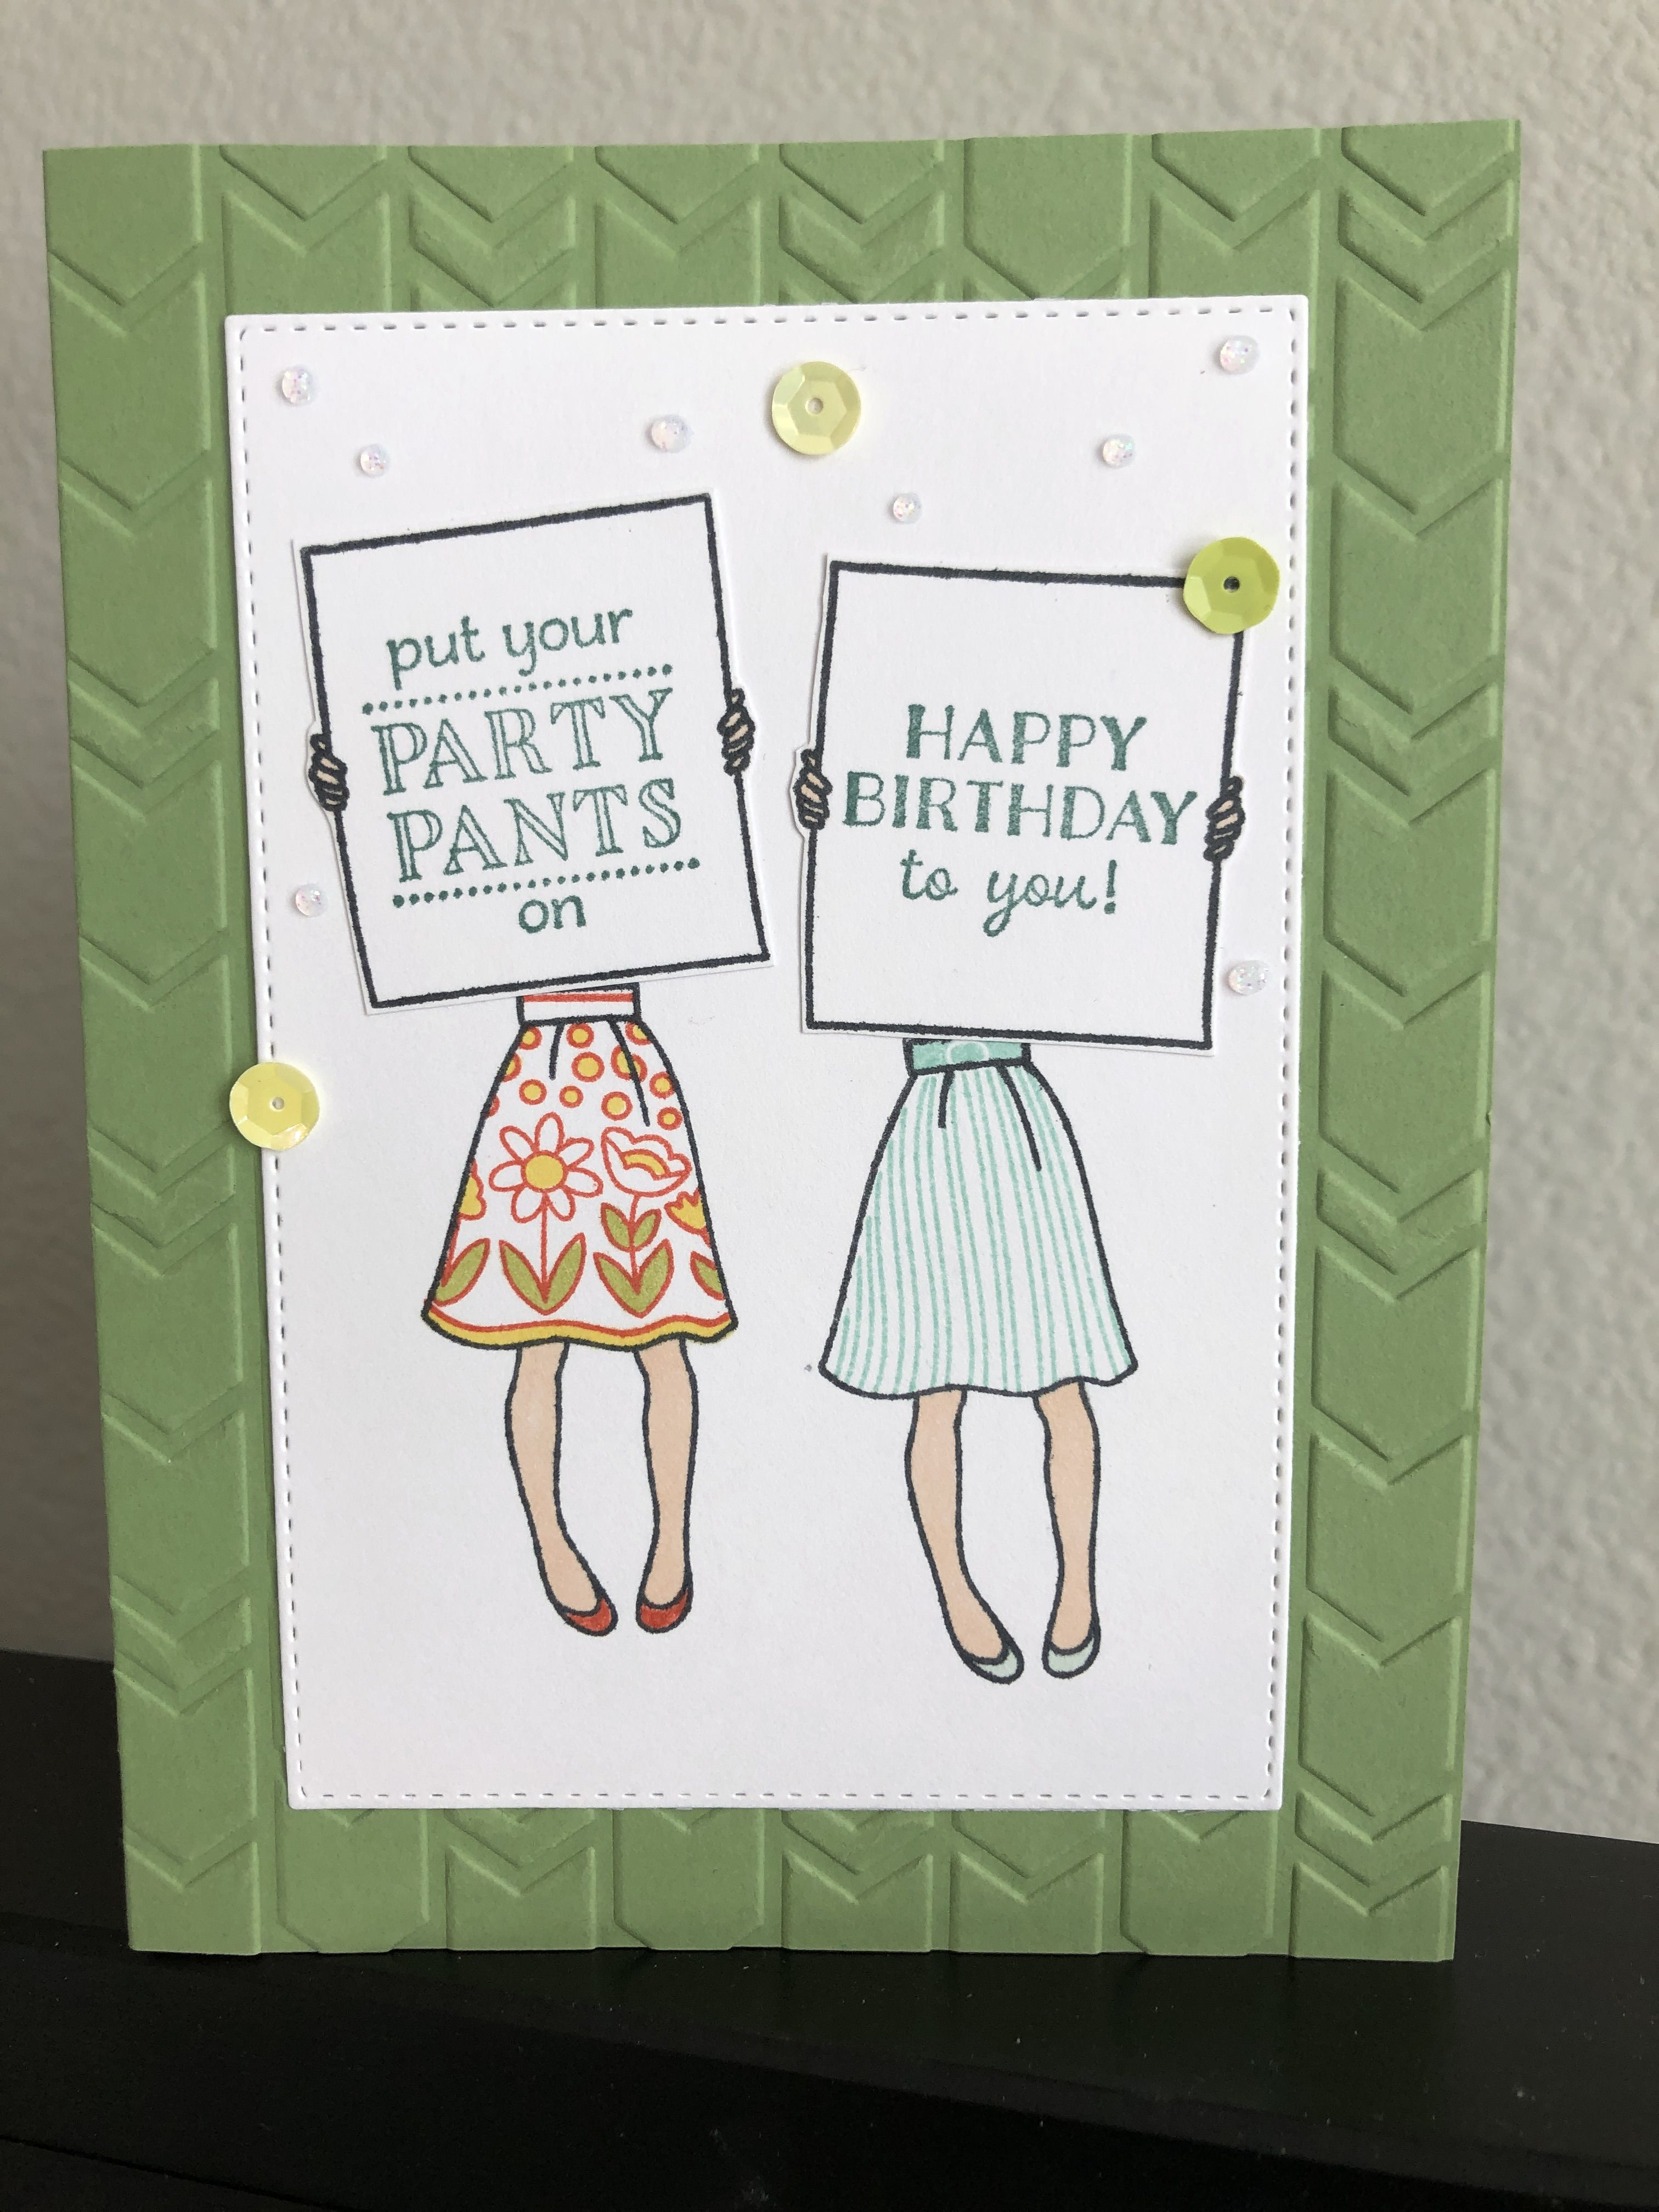 Hand Delivered Party Pants Card Stampin Up Birthday Cards Stamping Up Cards Stampin Up Cards